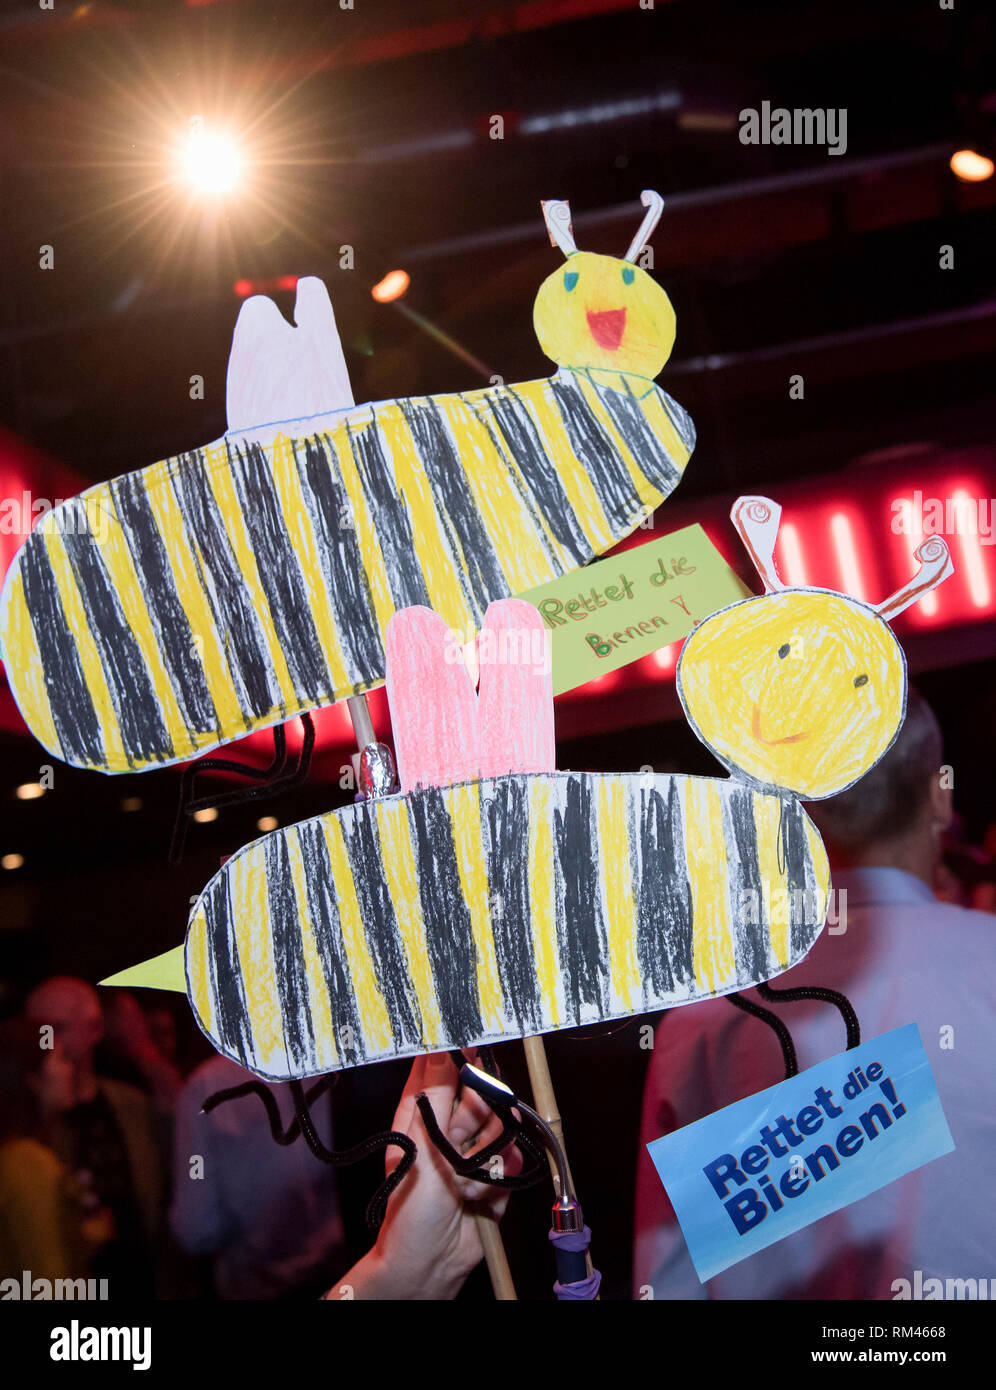 Bayernweit, Germany. 13th Feb, 2019. During the closing event of the petition for a referendum, bees that have been made into bees will be given a high regard for biodiversity. According to the initiators, more than ten percent of all eligible voters in Bavaria had already signed up in the town halls well before the end of the registration period. Credit: Sven Hoppe/dpa/Alamy Live News - Stock Image